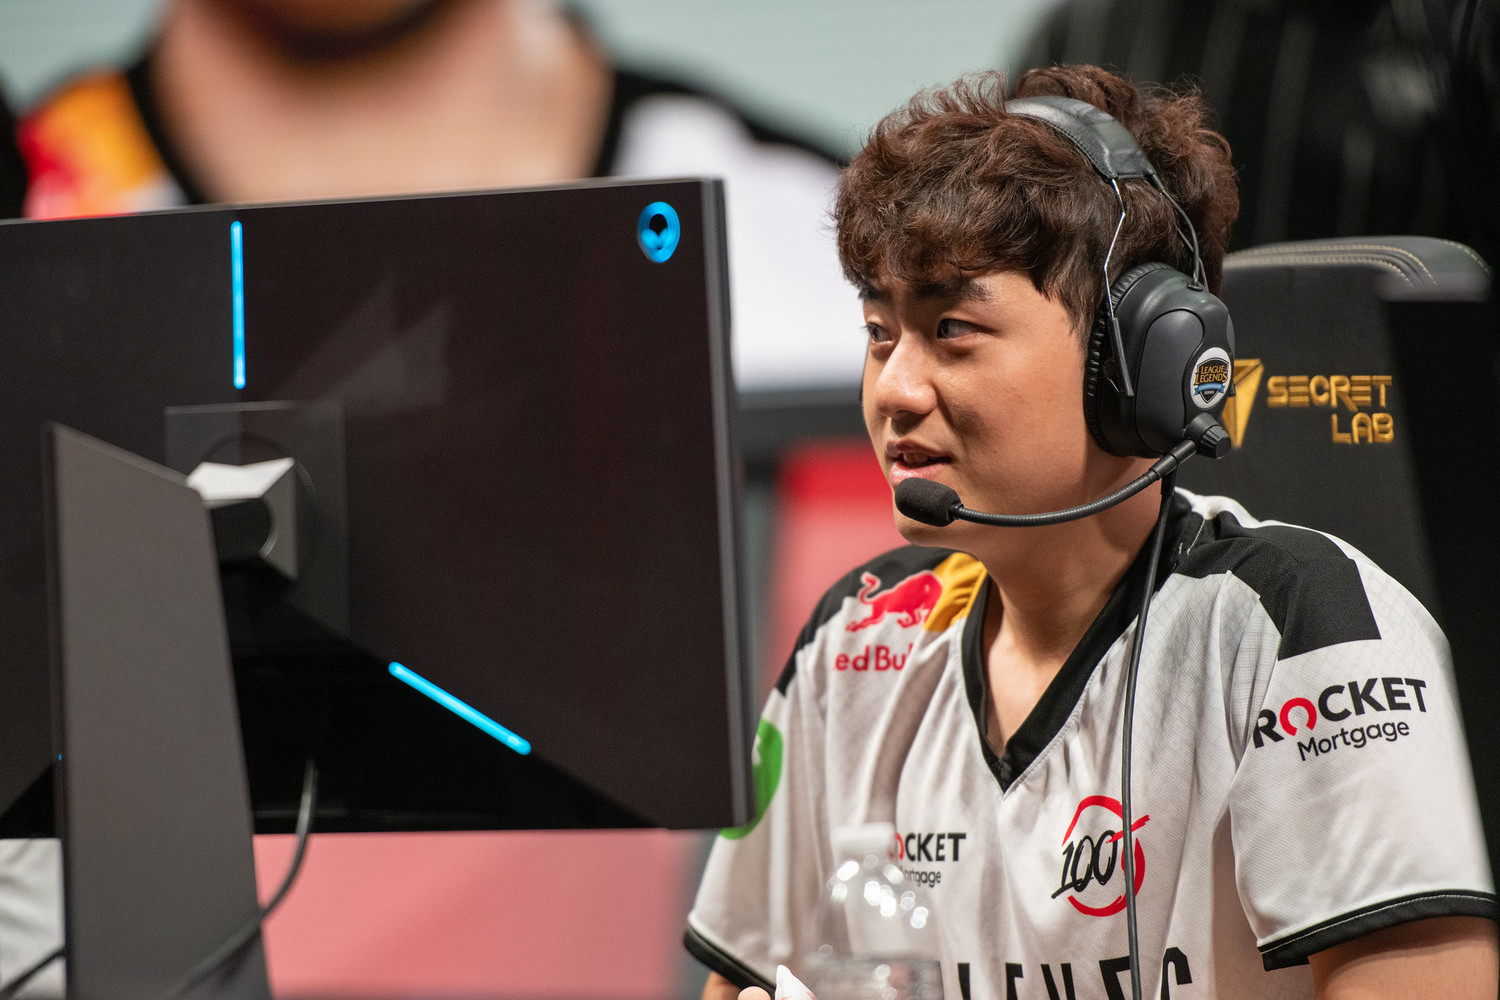 前SKT下路選手Bang明年可能加入LCS新軍EG。   圖:翻攝自 LoL Esports Photo Flickr